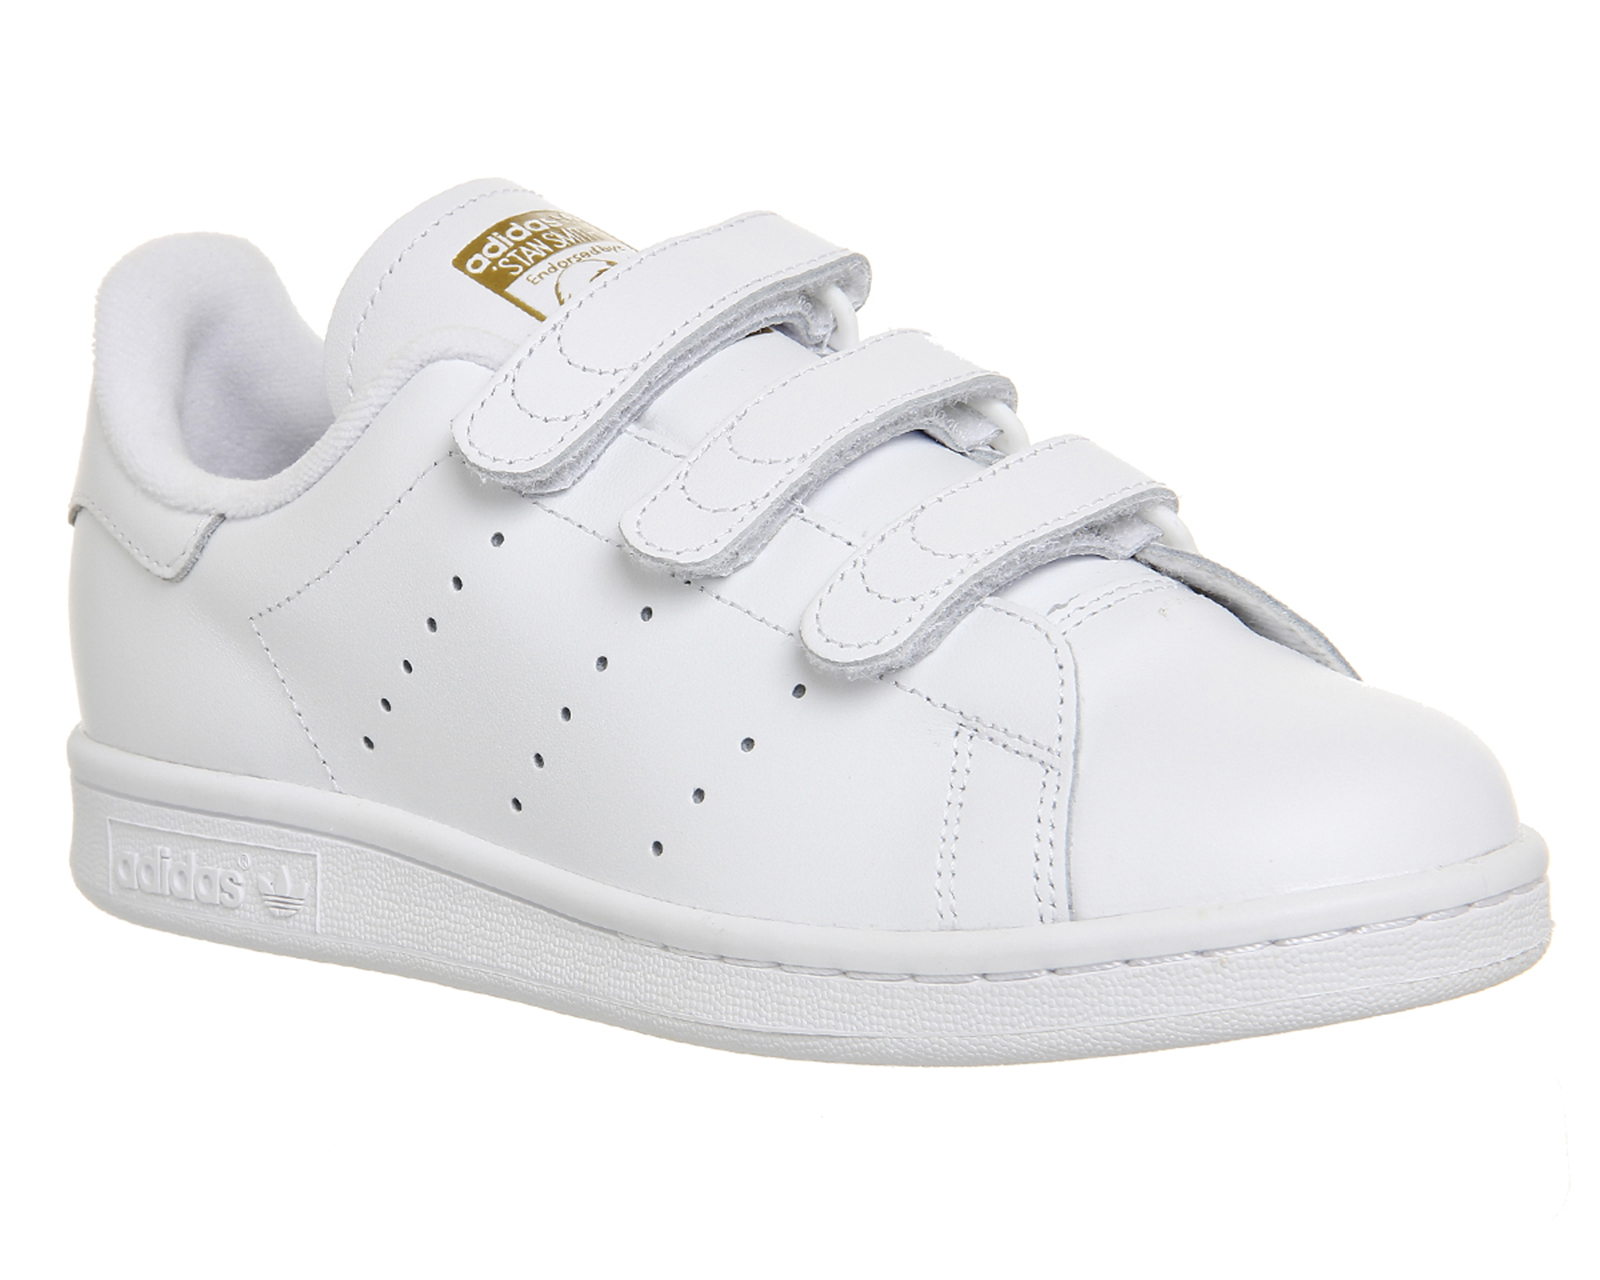 Adidas Stan Smith Ebay